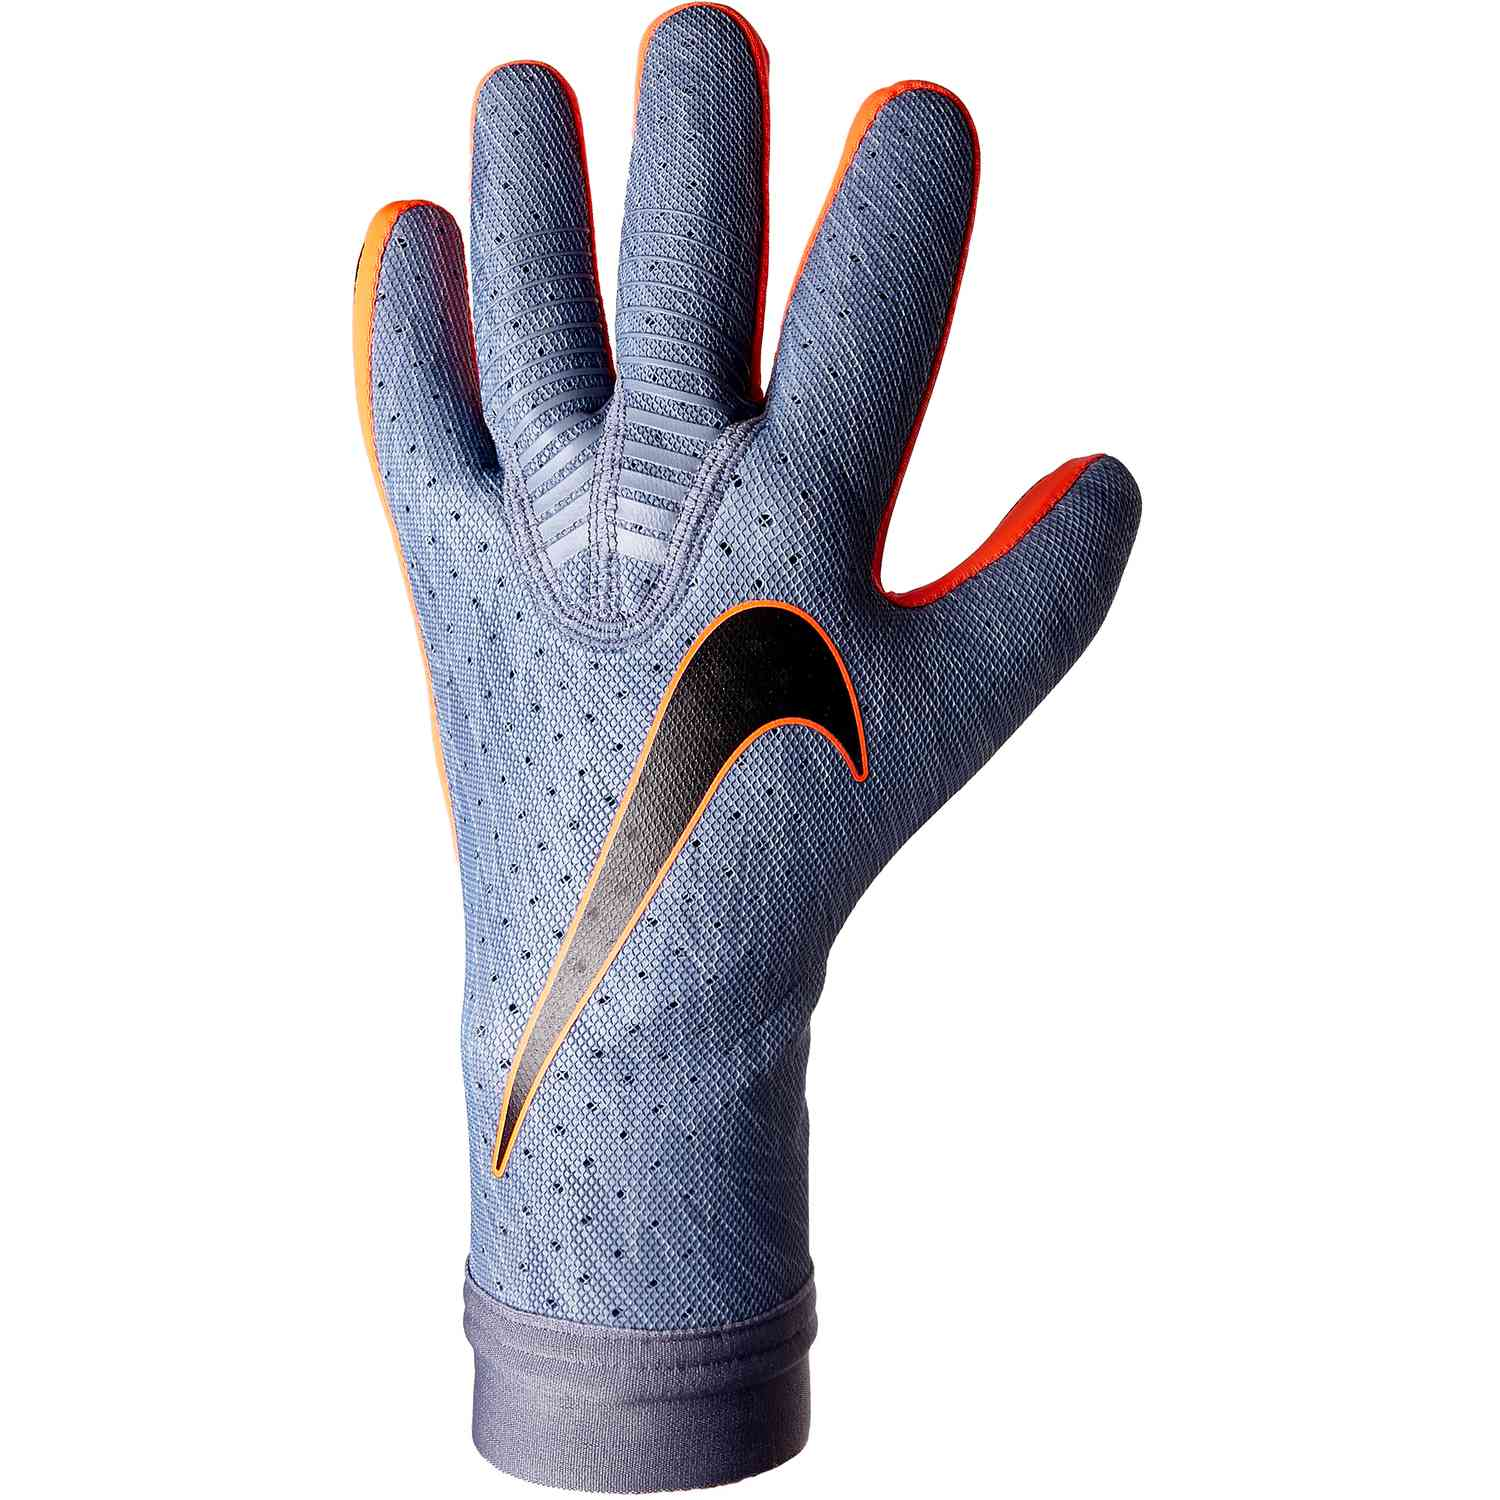 buy online 6e508 1a043 Nike Mercurial Touch Elite Goalkeeper Gloves - Victory Pack ...